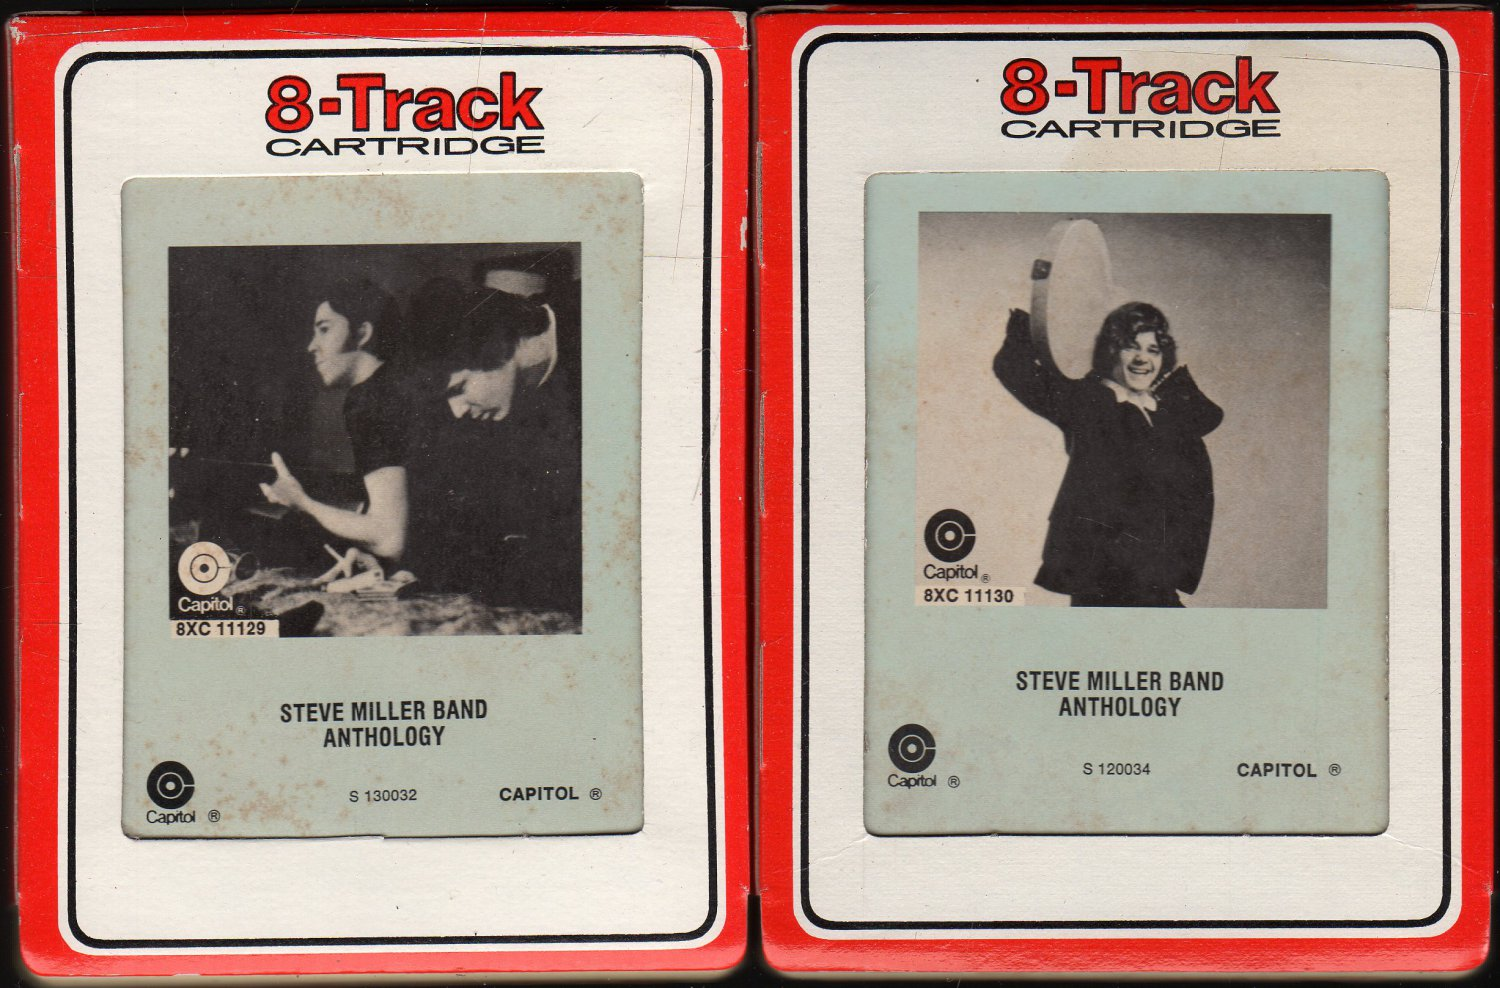 Steve Miller Band - Complete Anthology  Tapes 1 & 2 1972 RCA CAPITOL 8-track tape